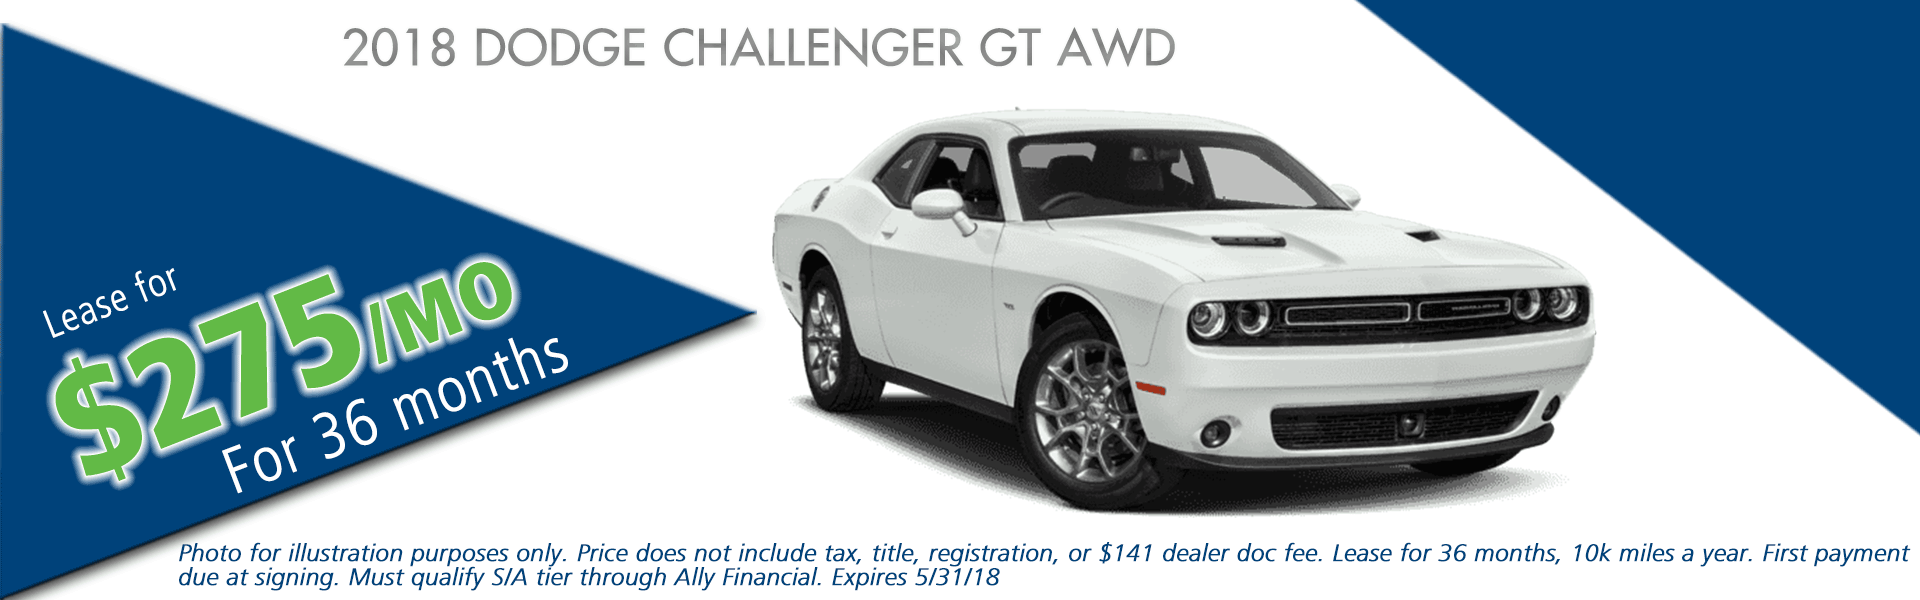 NEW 2018 DODGE CHALLENGER GT ALL-WHEEL DRIVE CarRight Chrysler Jeep Dodge Ram Fuso moon, pittsburgh, sewickley, pennsylvania.